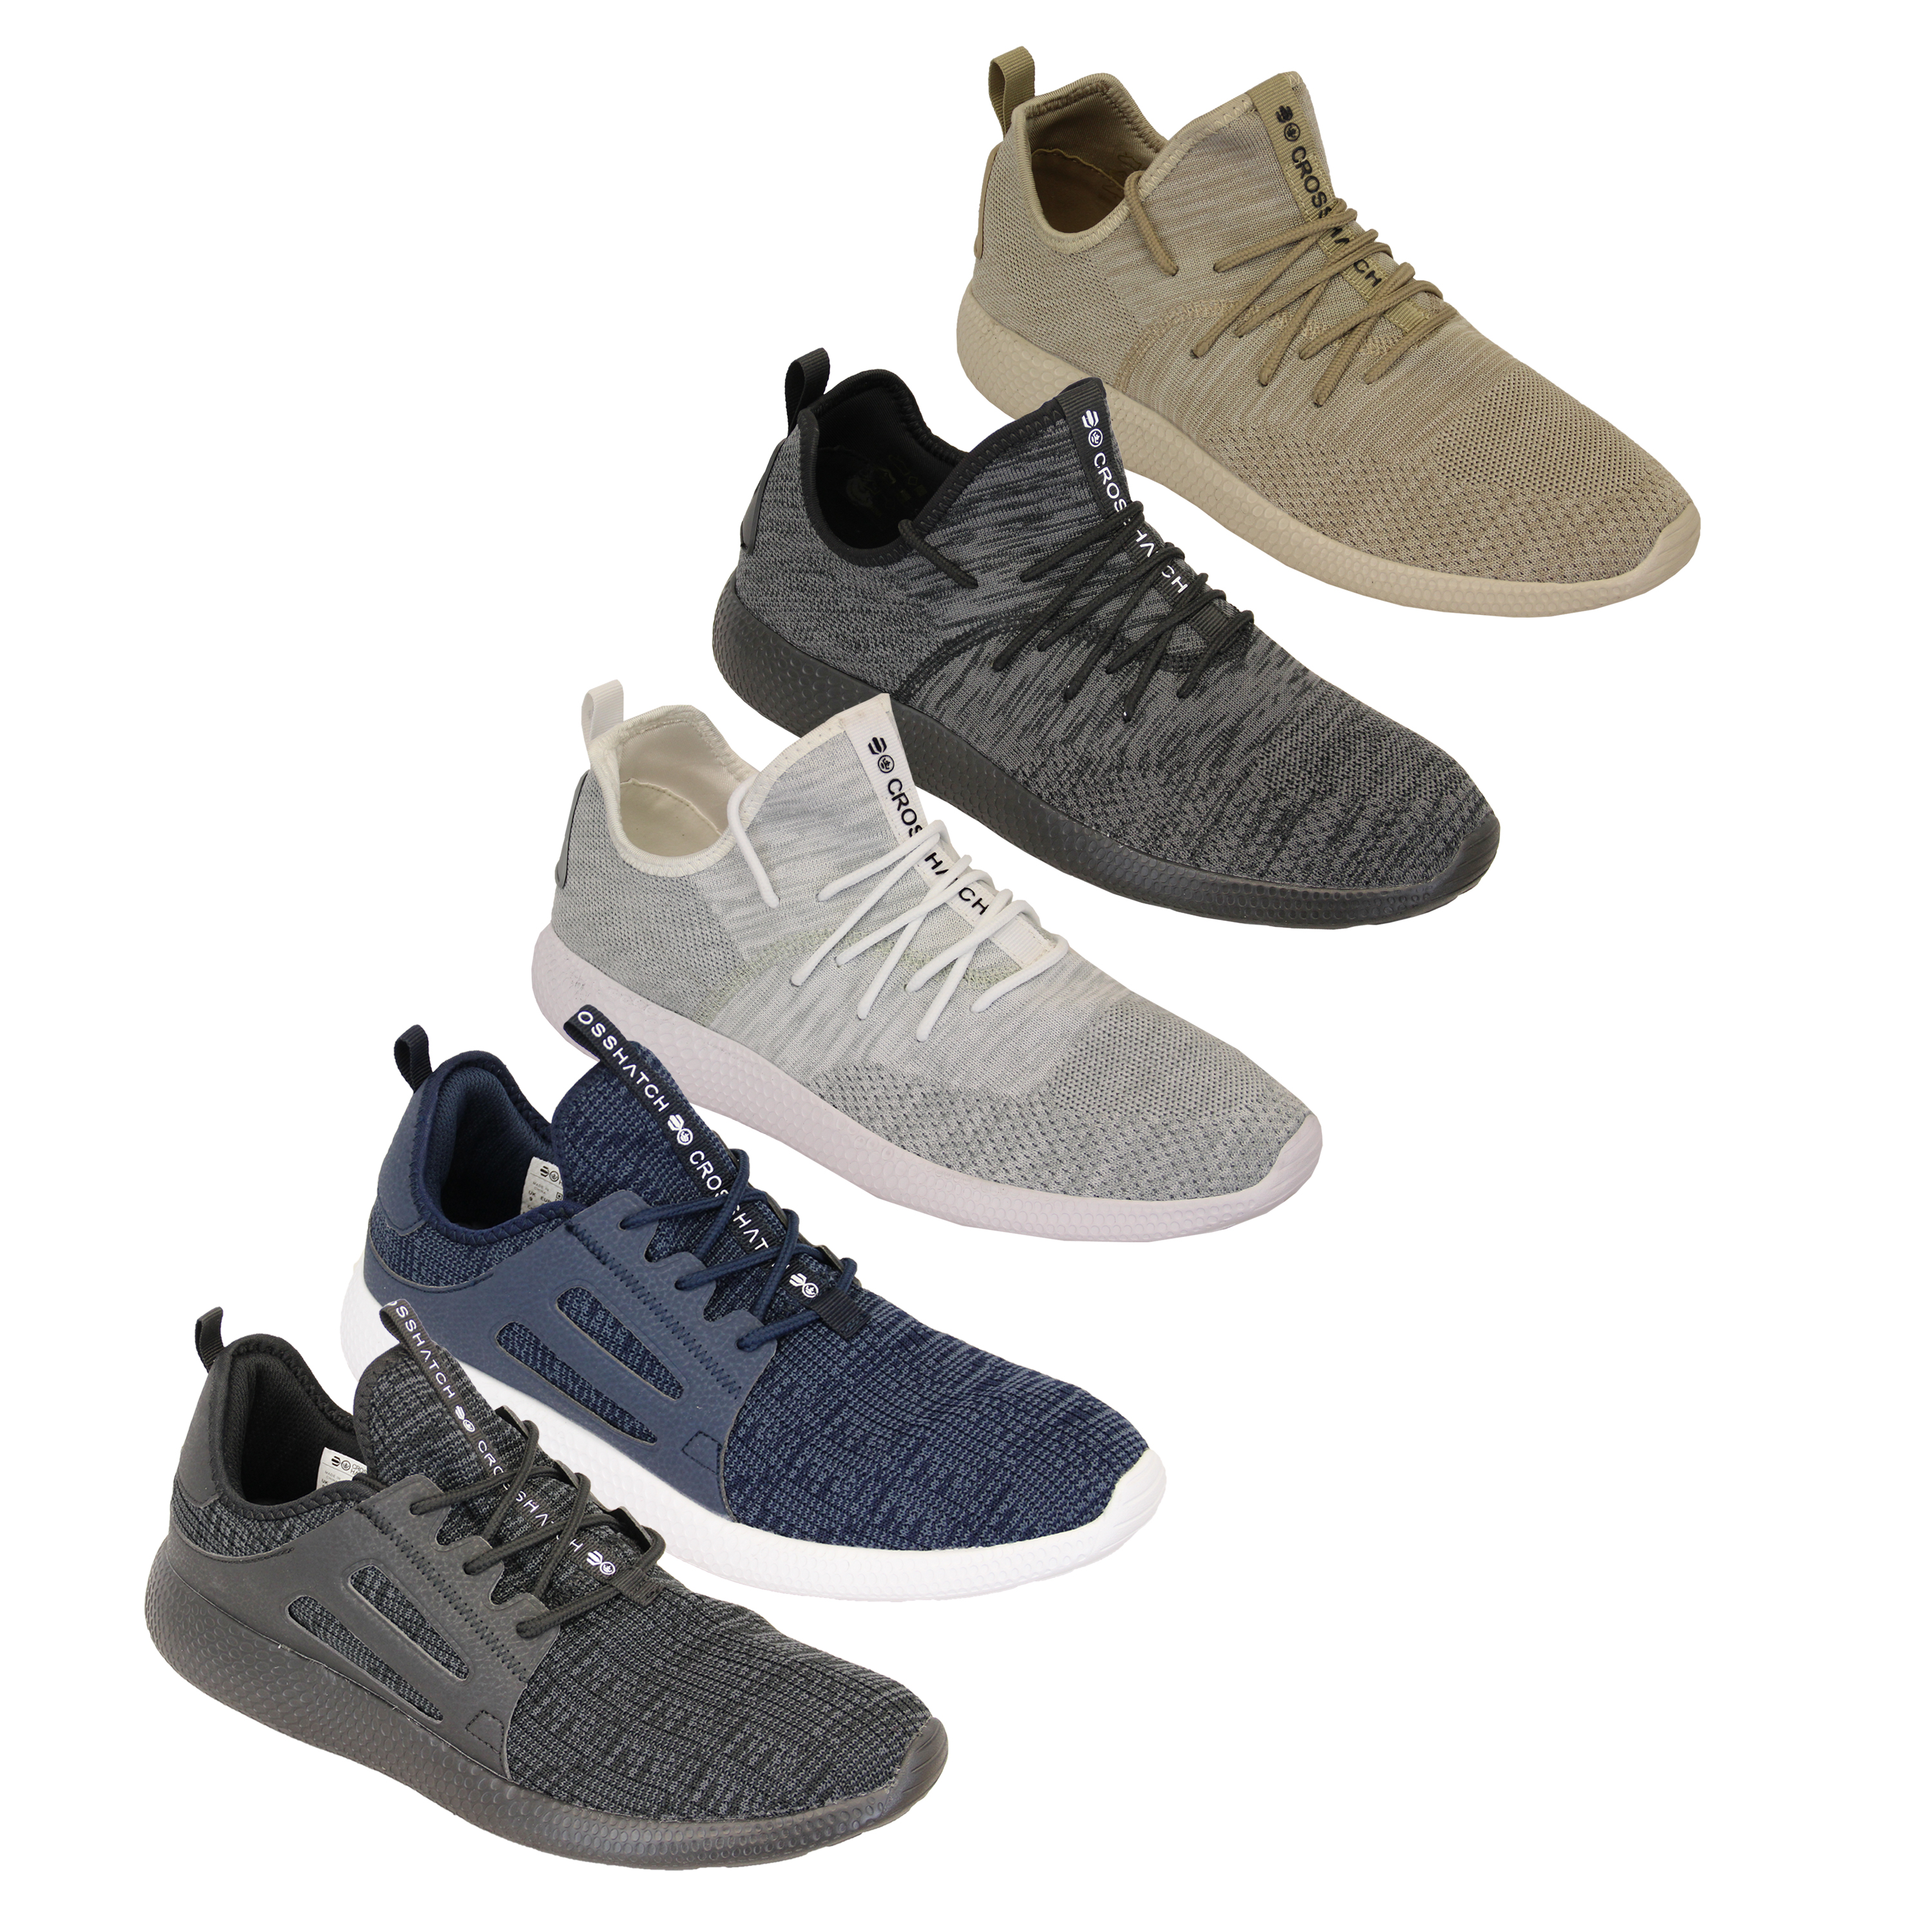 Mens-Trainers-Crosshatch-Jogging-Shoes-Lace-Up-Walking-Running-Sports-Gym-New thumbnail 5